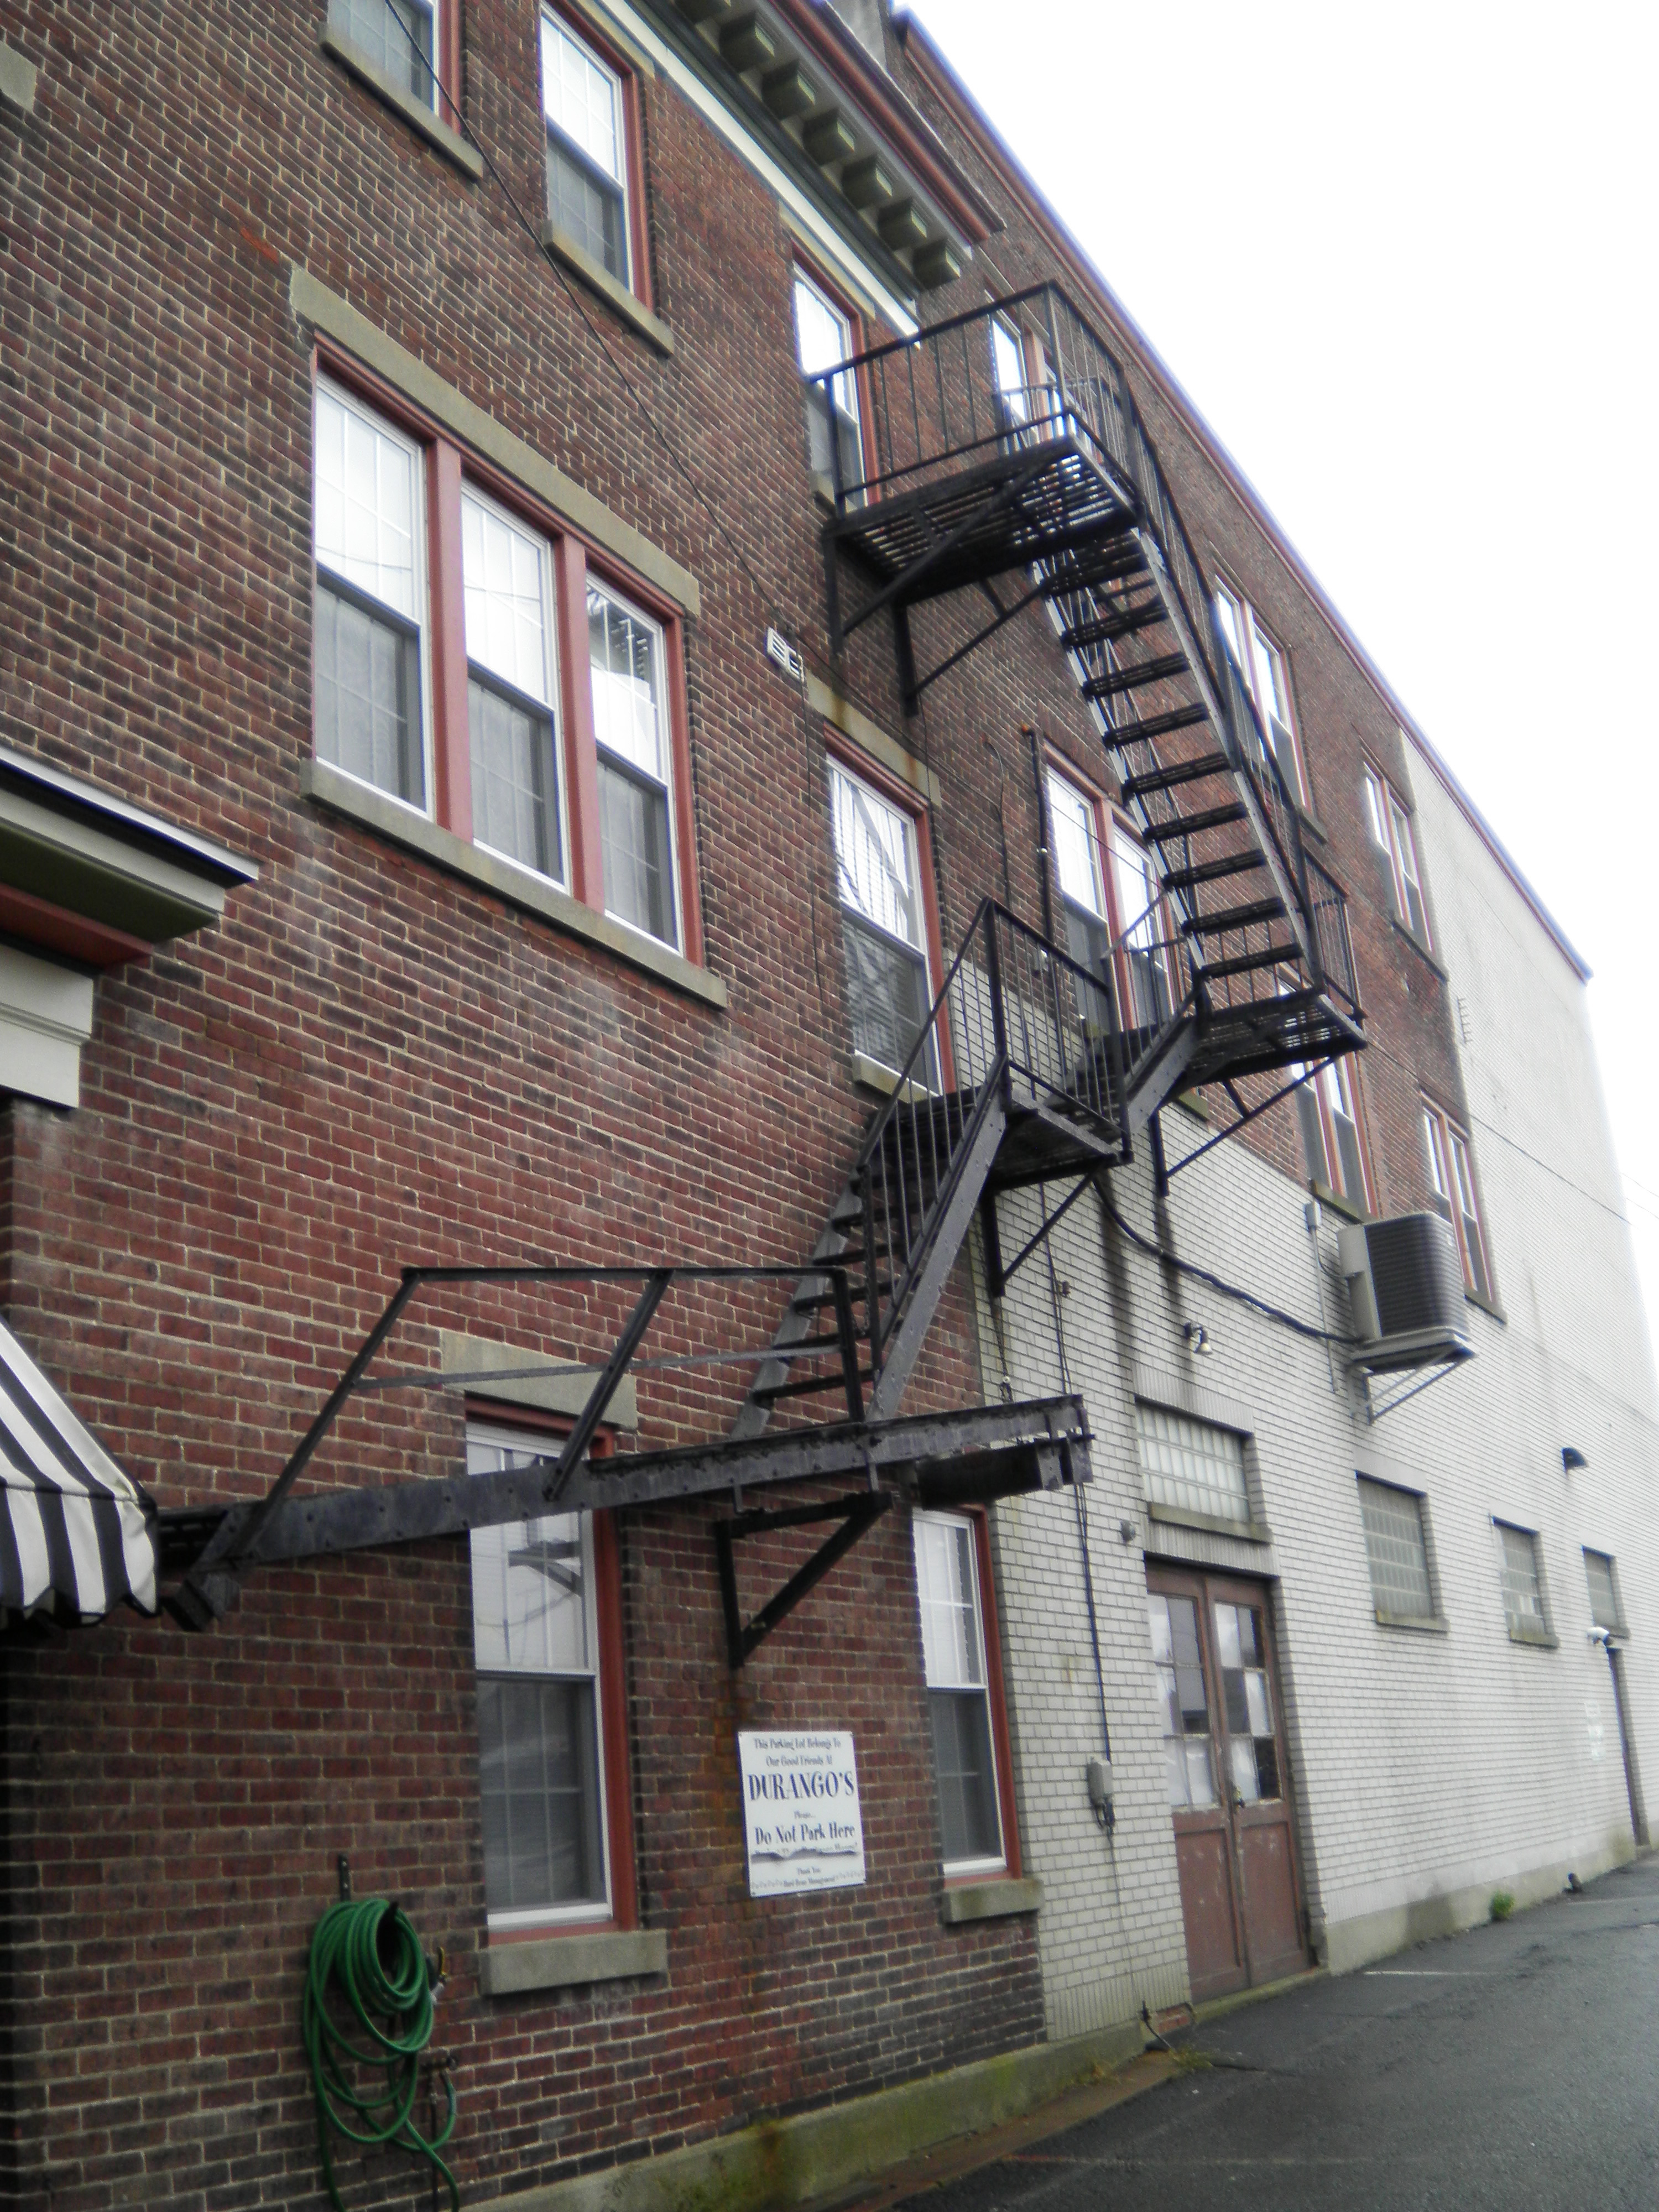 Apartment Building Fire Escape Ladder the pennsylvania center for the book - rhoads opera house fire